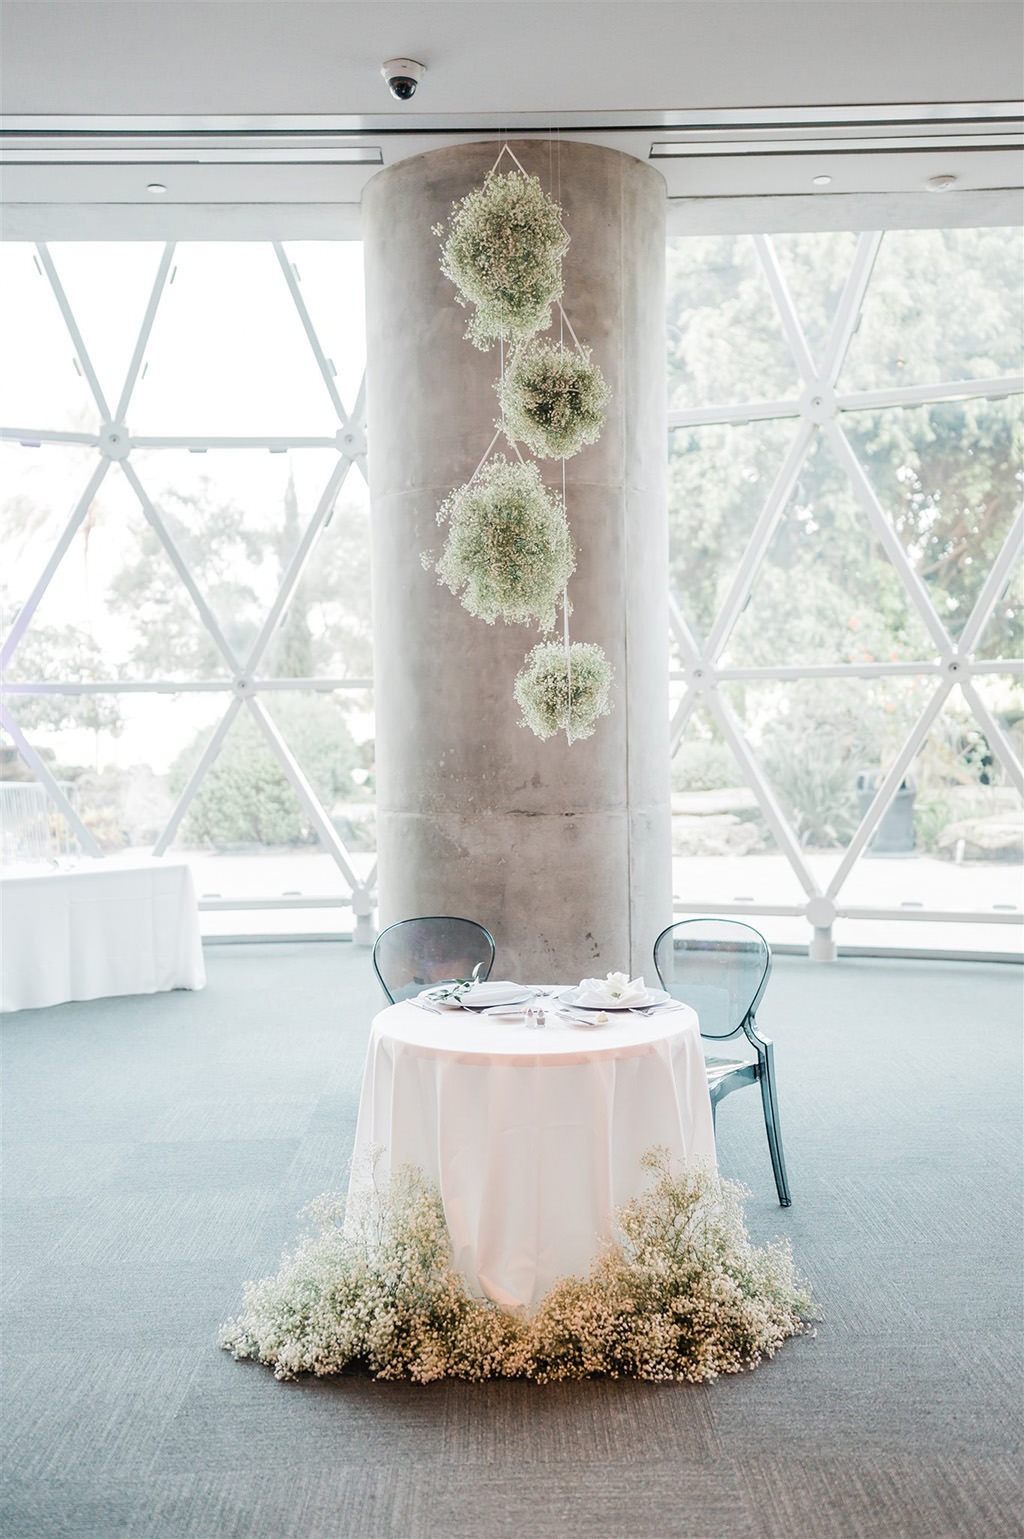 Elegant Whimsy Wedding Reception Decor, Round Sweetheart Table with Blush Pink Linen, White Baby's Breath Floral Arrangements, Hanging White Round Flowers | Tampa Wedding Planner and Florist John Campbell Weddings